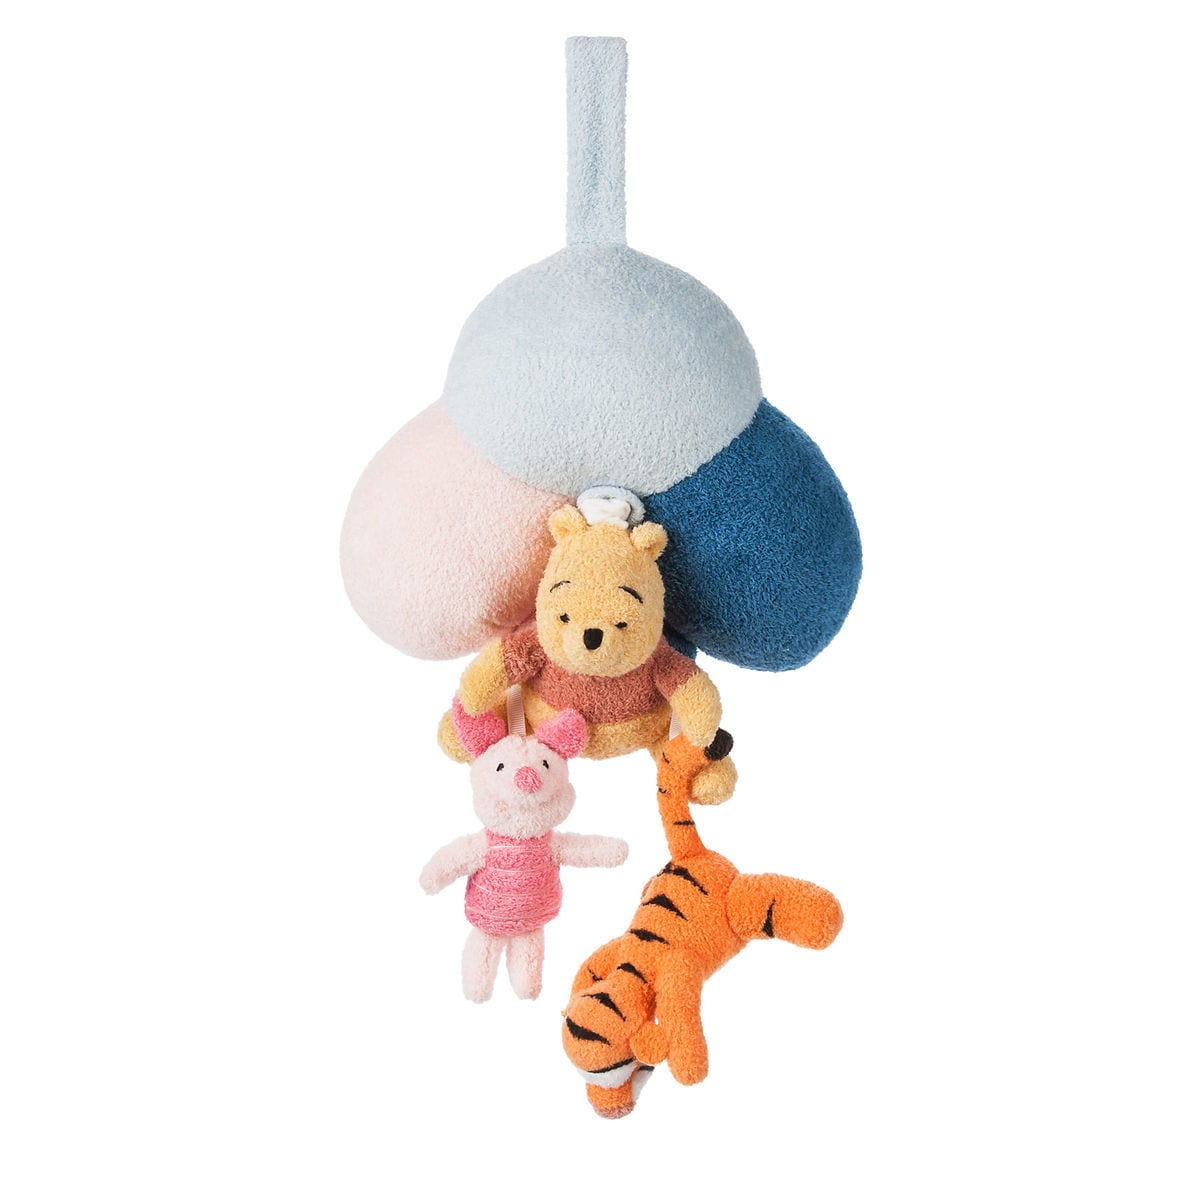 Winnie the Pooh Plush Musical Mobile for Baby | shopDisney